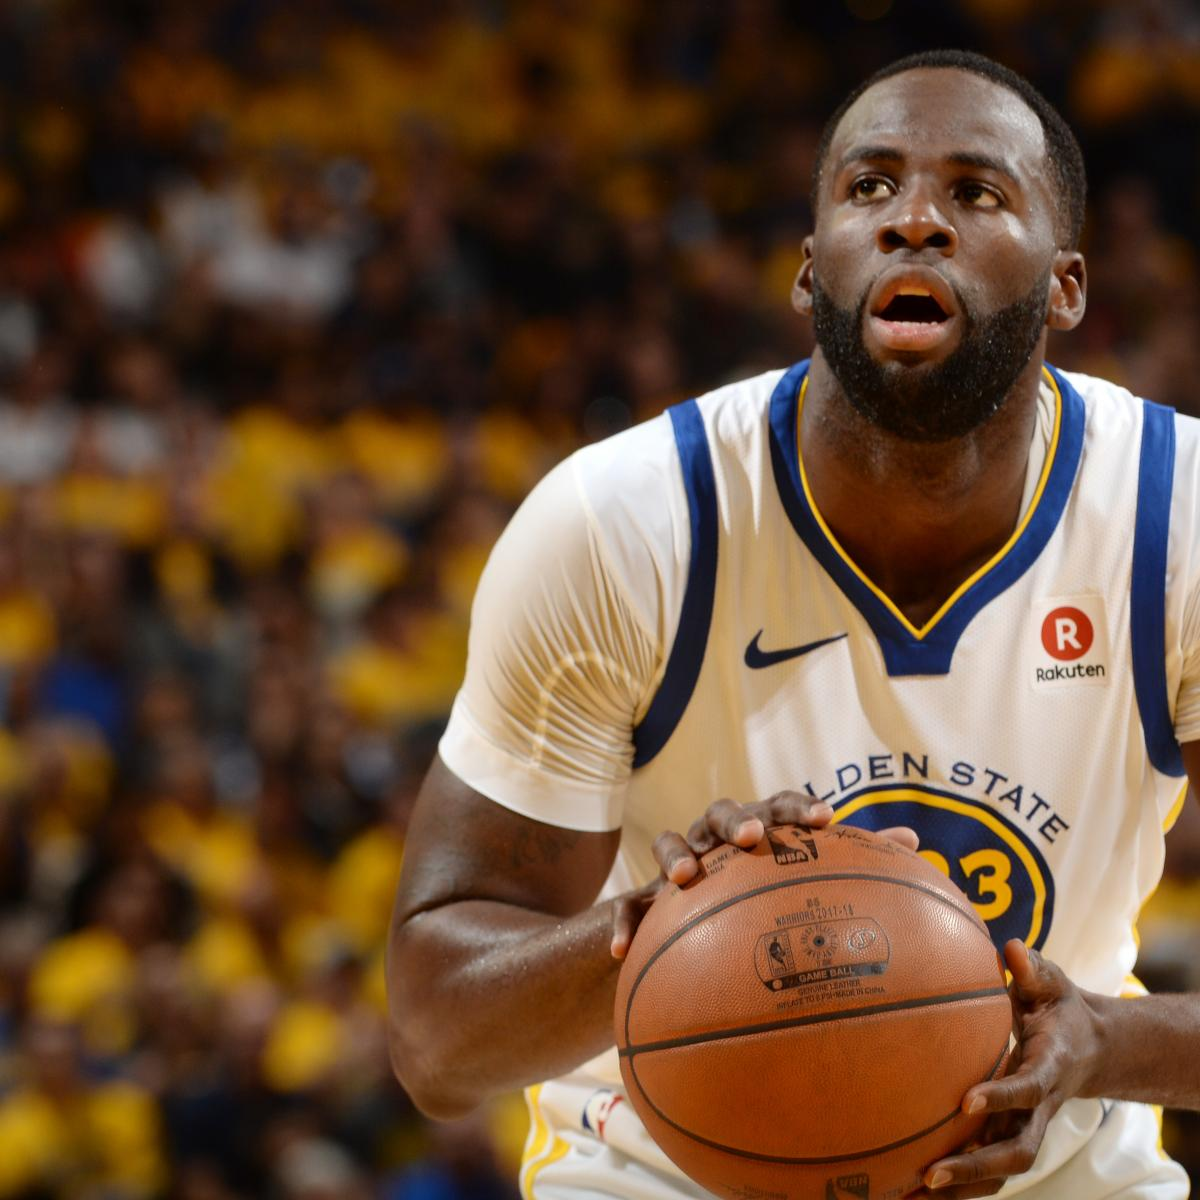 NBA Playoffs 2018: Full Round 1 Bracket Results And